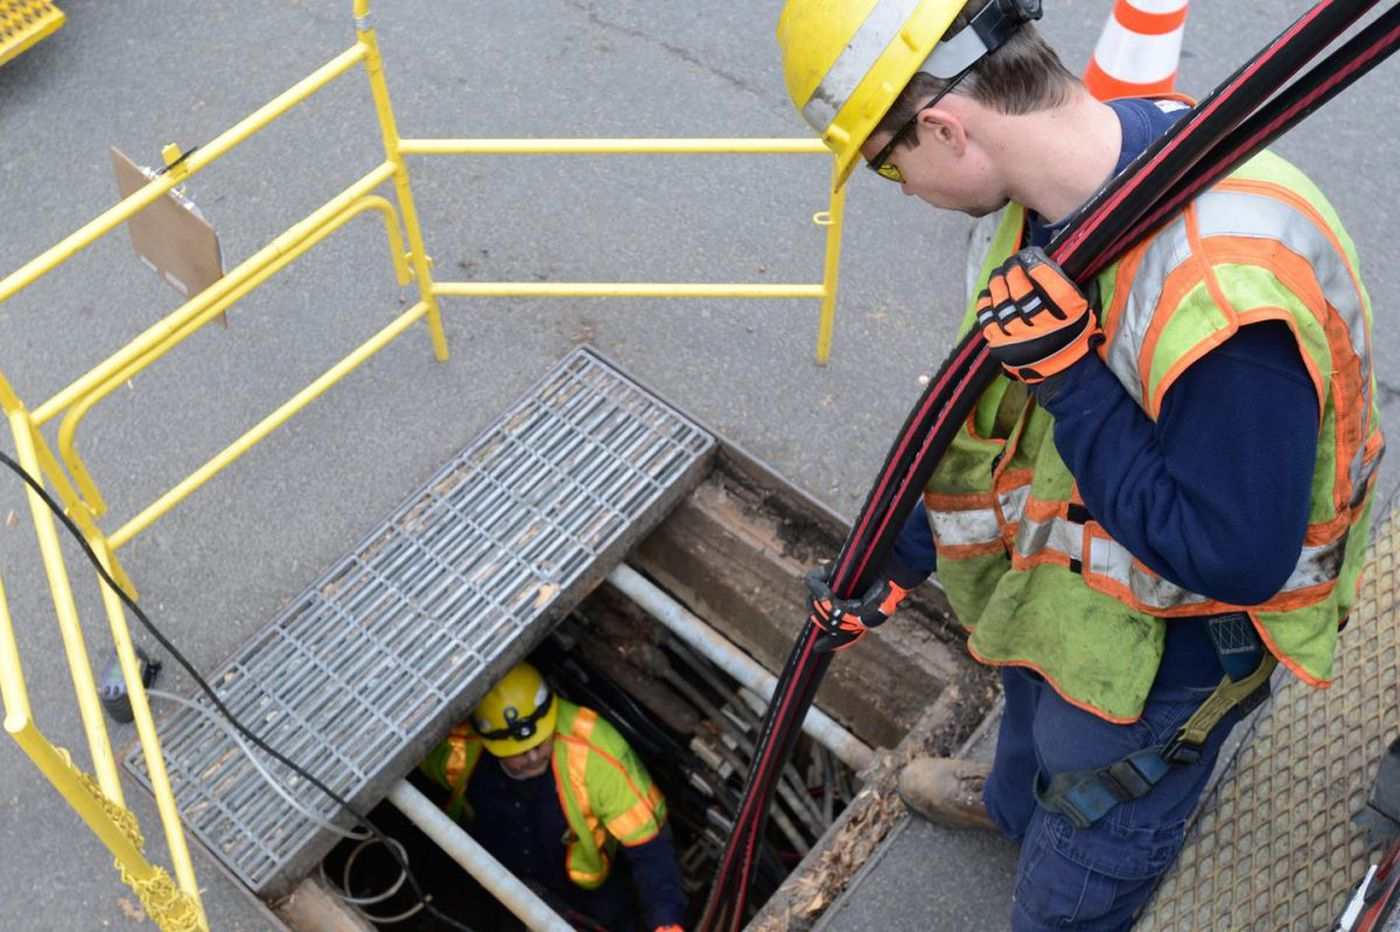 Would burying power lines in Philly prevent storm blackouts? Yes, but they cost more